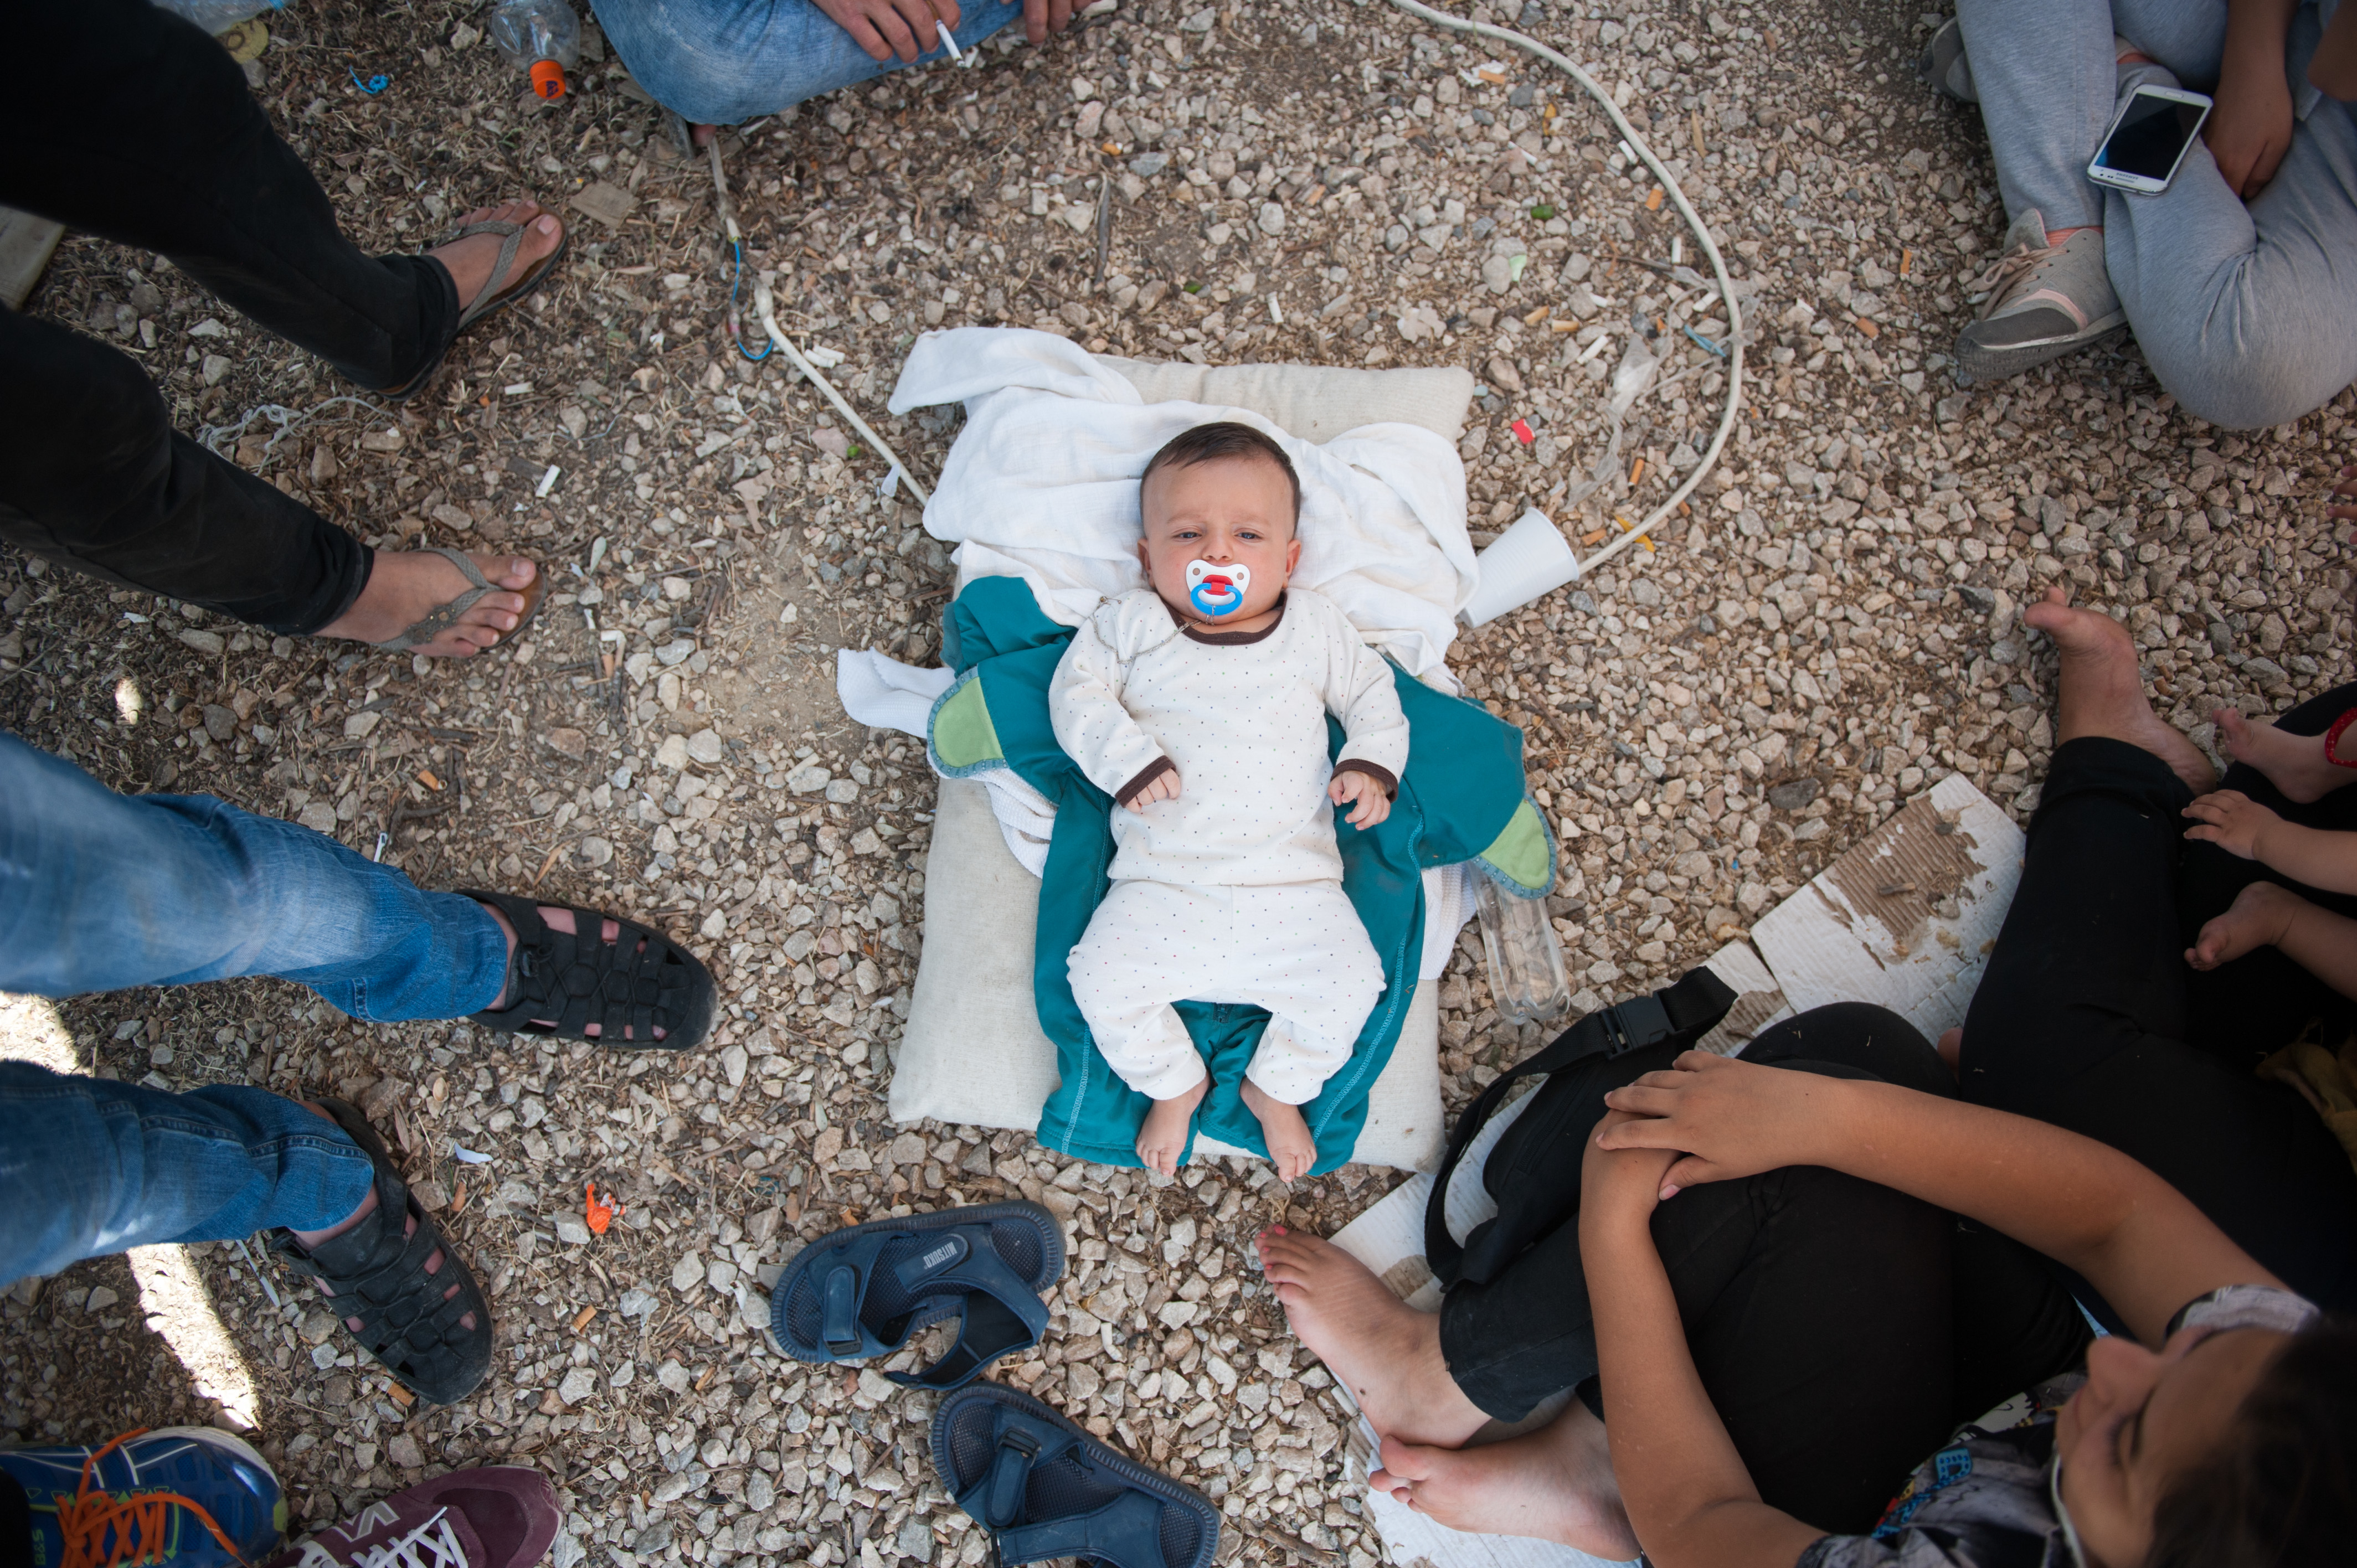 """A Syrian baby lies in the floor of Kara Tepe camp. The family has no milk to feed the child and no money to buy.  The baby's father, 26 year old  Deshevan said:  """"I am here with my family: my wife, my child and my sister. We are part of a group of 19 people from Syria.  We have been in the camp for five days so far. There is nothing here for us. All 19 of us sleep in one tent. Everywhere you see dirty water and rubbish. There are no toilets, no cleanliness. There is one small tap for drinking water and washing ourselves.  There is not enough food for everyone, but this is not important to us. What we need – but don't have – is information about our papers.   We were given a piece of paper by the port police, but since then we have been waiting here and have heard nothing. Nobody tells us anything. There is no one responsible to give us any information, and we don't know what to do. No authority, no police, no information, nothing.  There is no milk for the baby – no one has given us any – so we have to go to the supermarket and buy it. We don't have enough money, but for the baby we will find a way."""""""